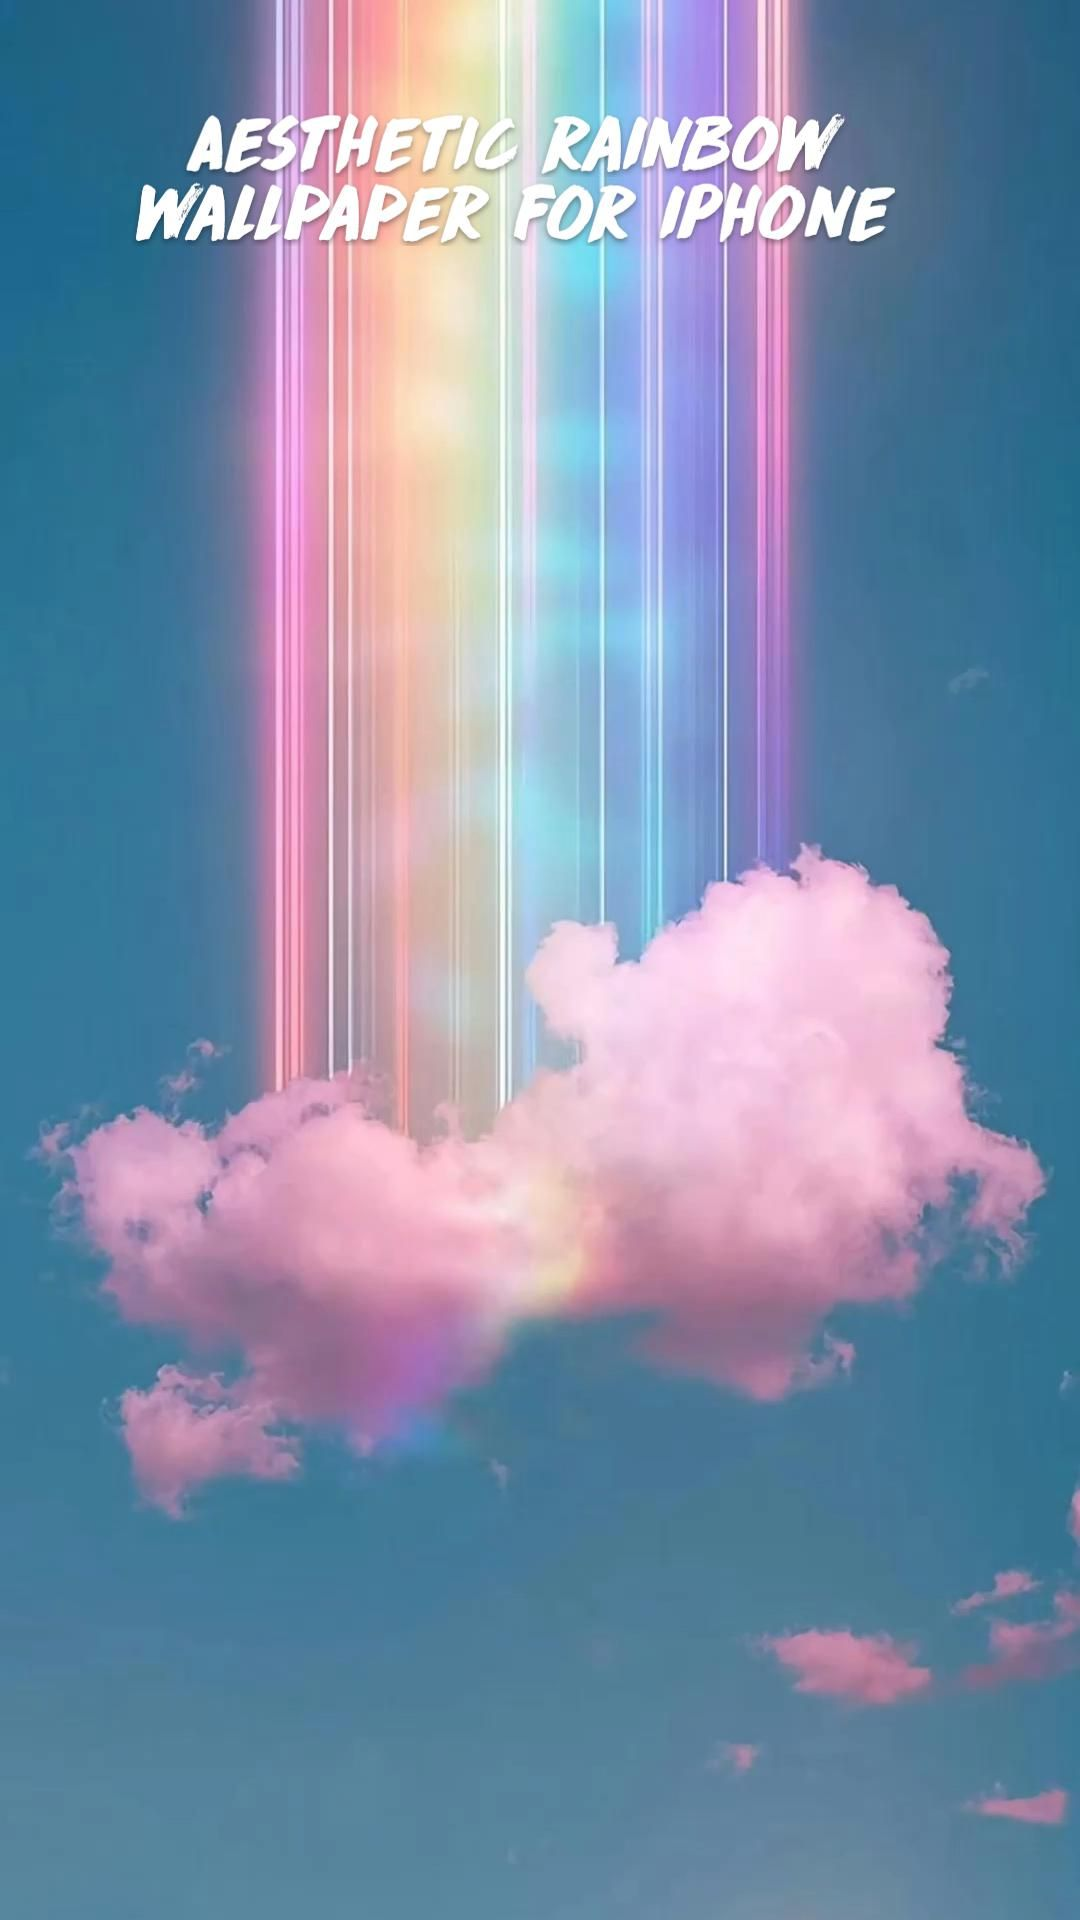 Aesthetic rainbow wallpaper for iPhone